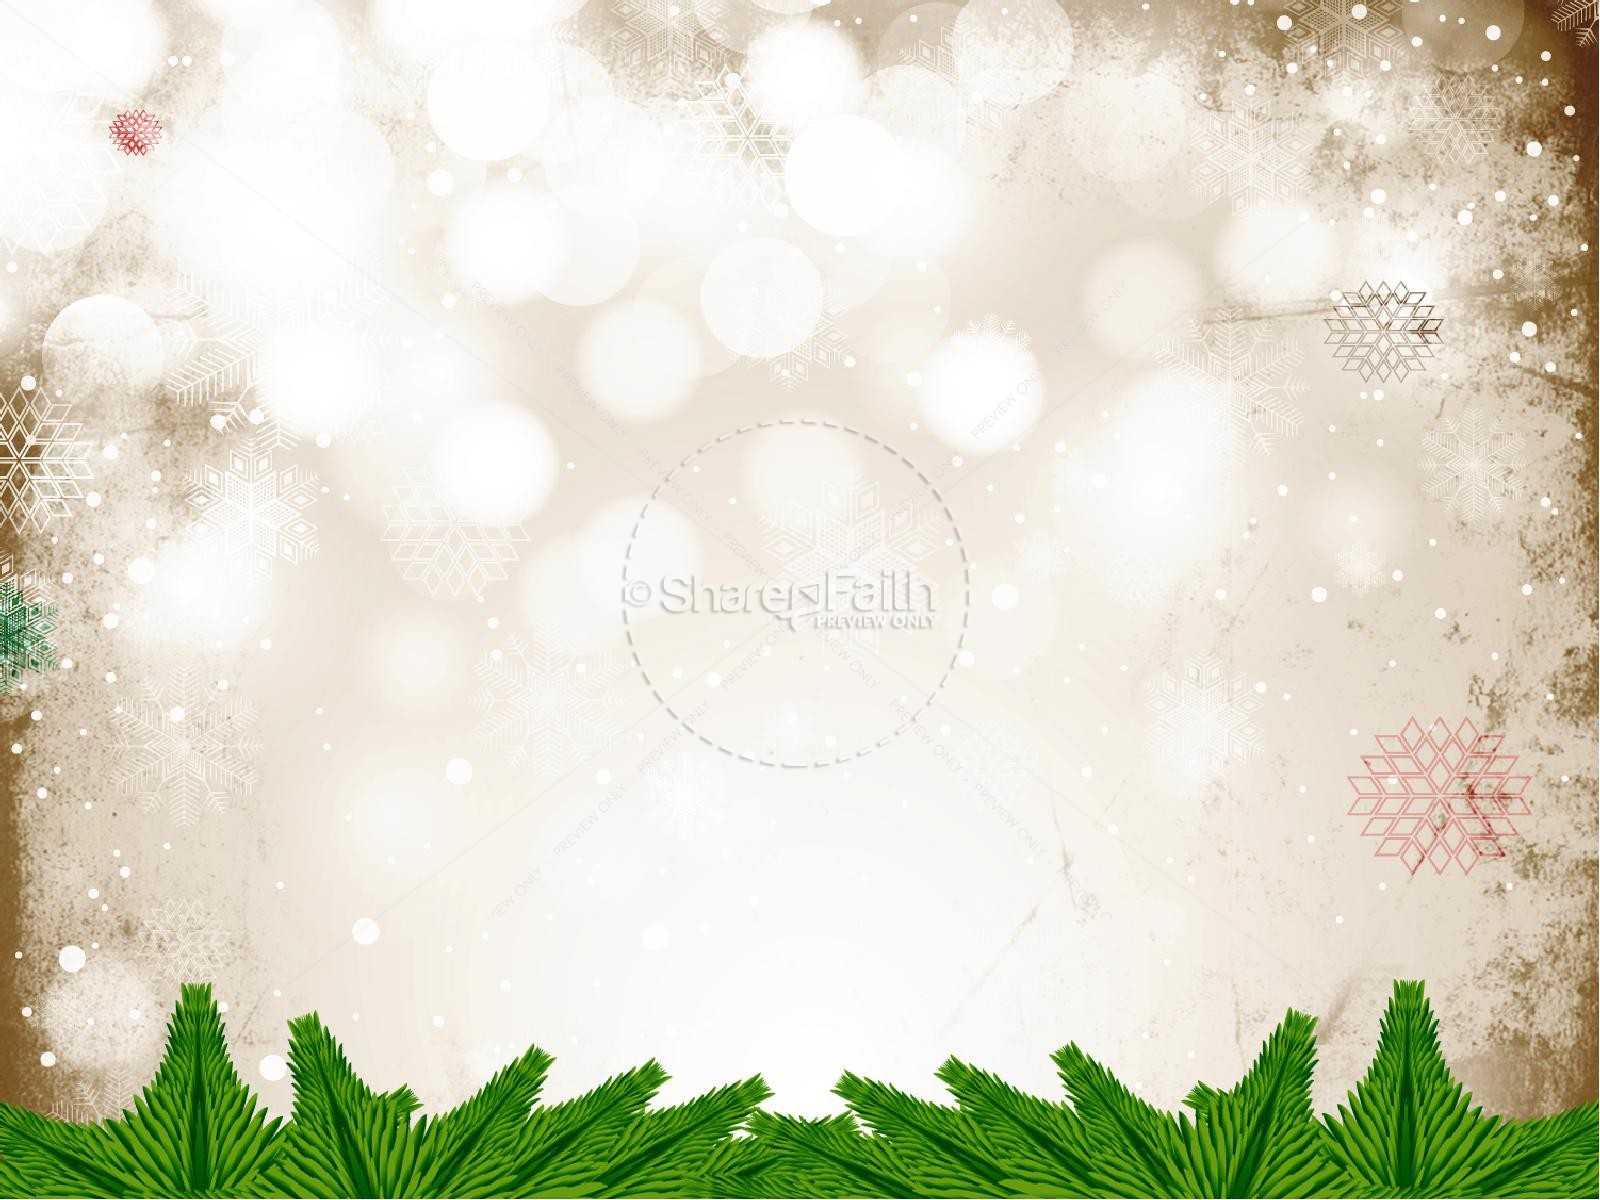 Merry christmas church powerpoint template for Free christmas powerpoint templates